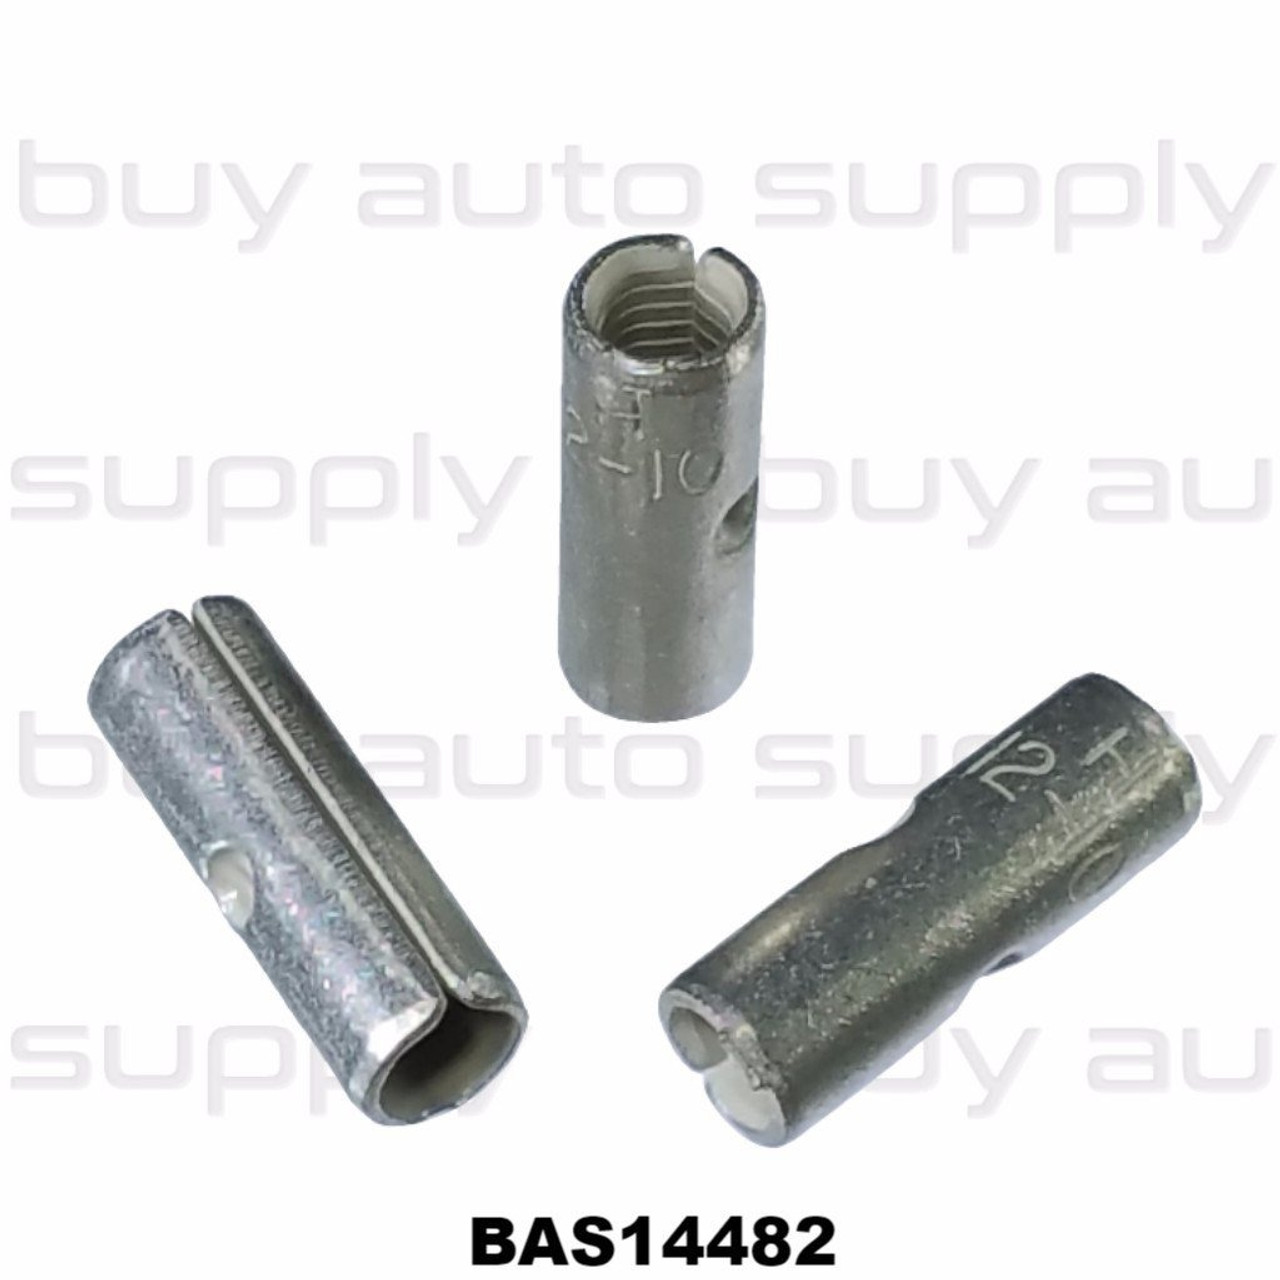 Butt Connectors - 12-10 Non-Insulated - BAS14482